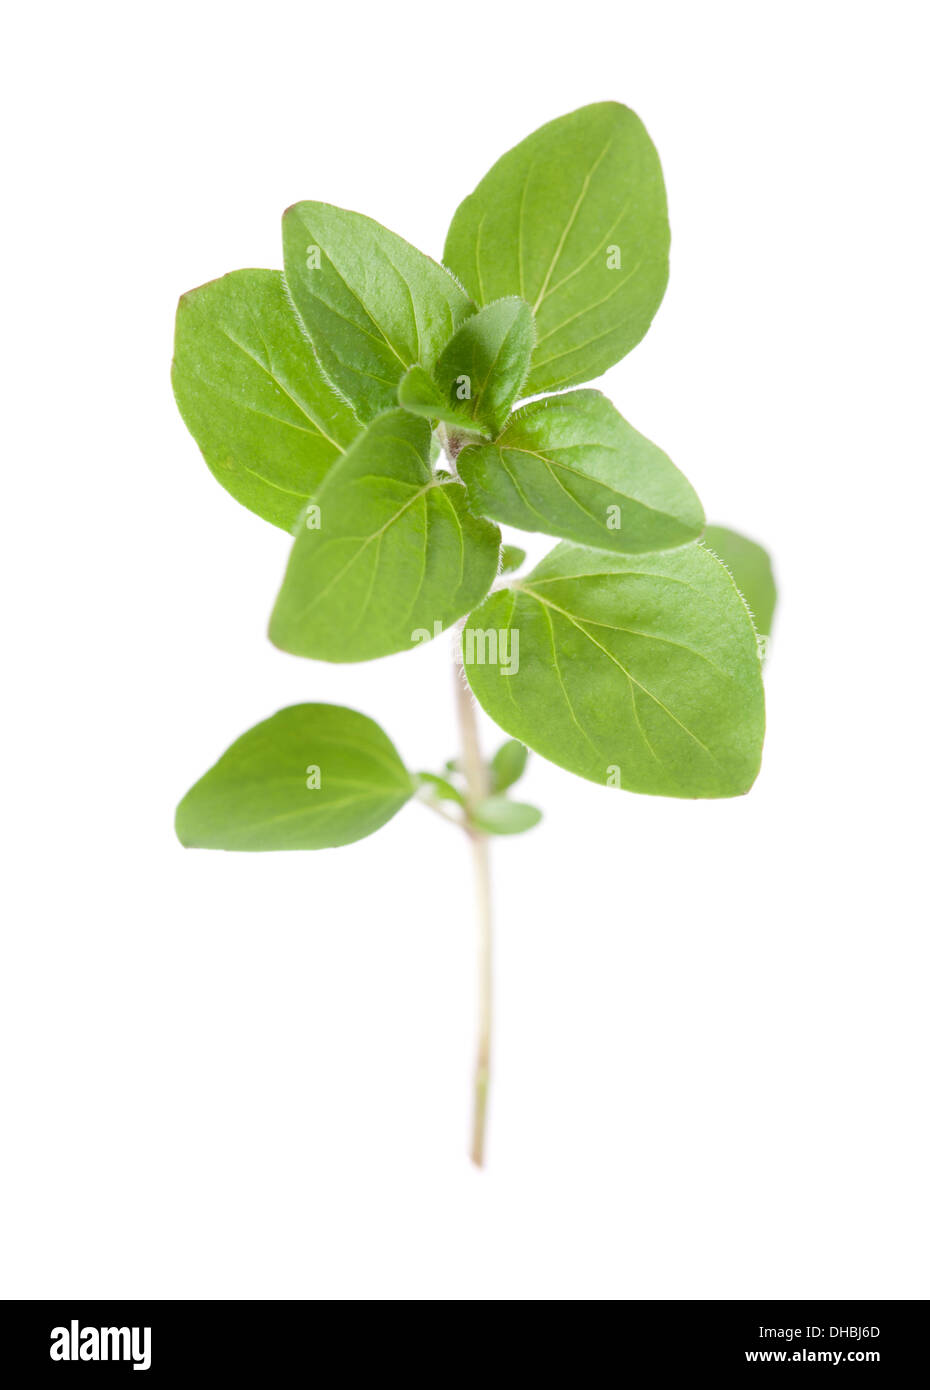 Sprig of Marjoram isolated on white background with shallow depth of field. - Stock Image